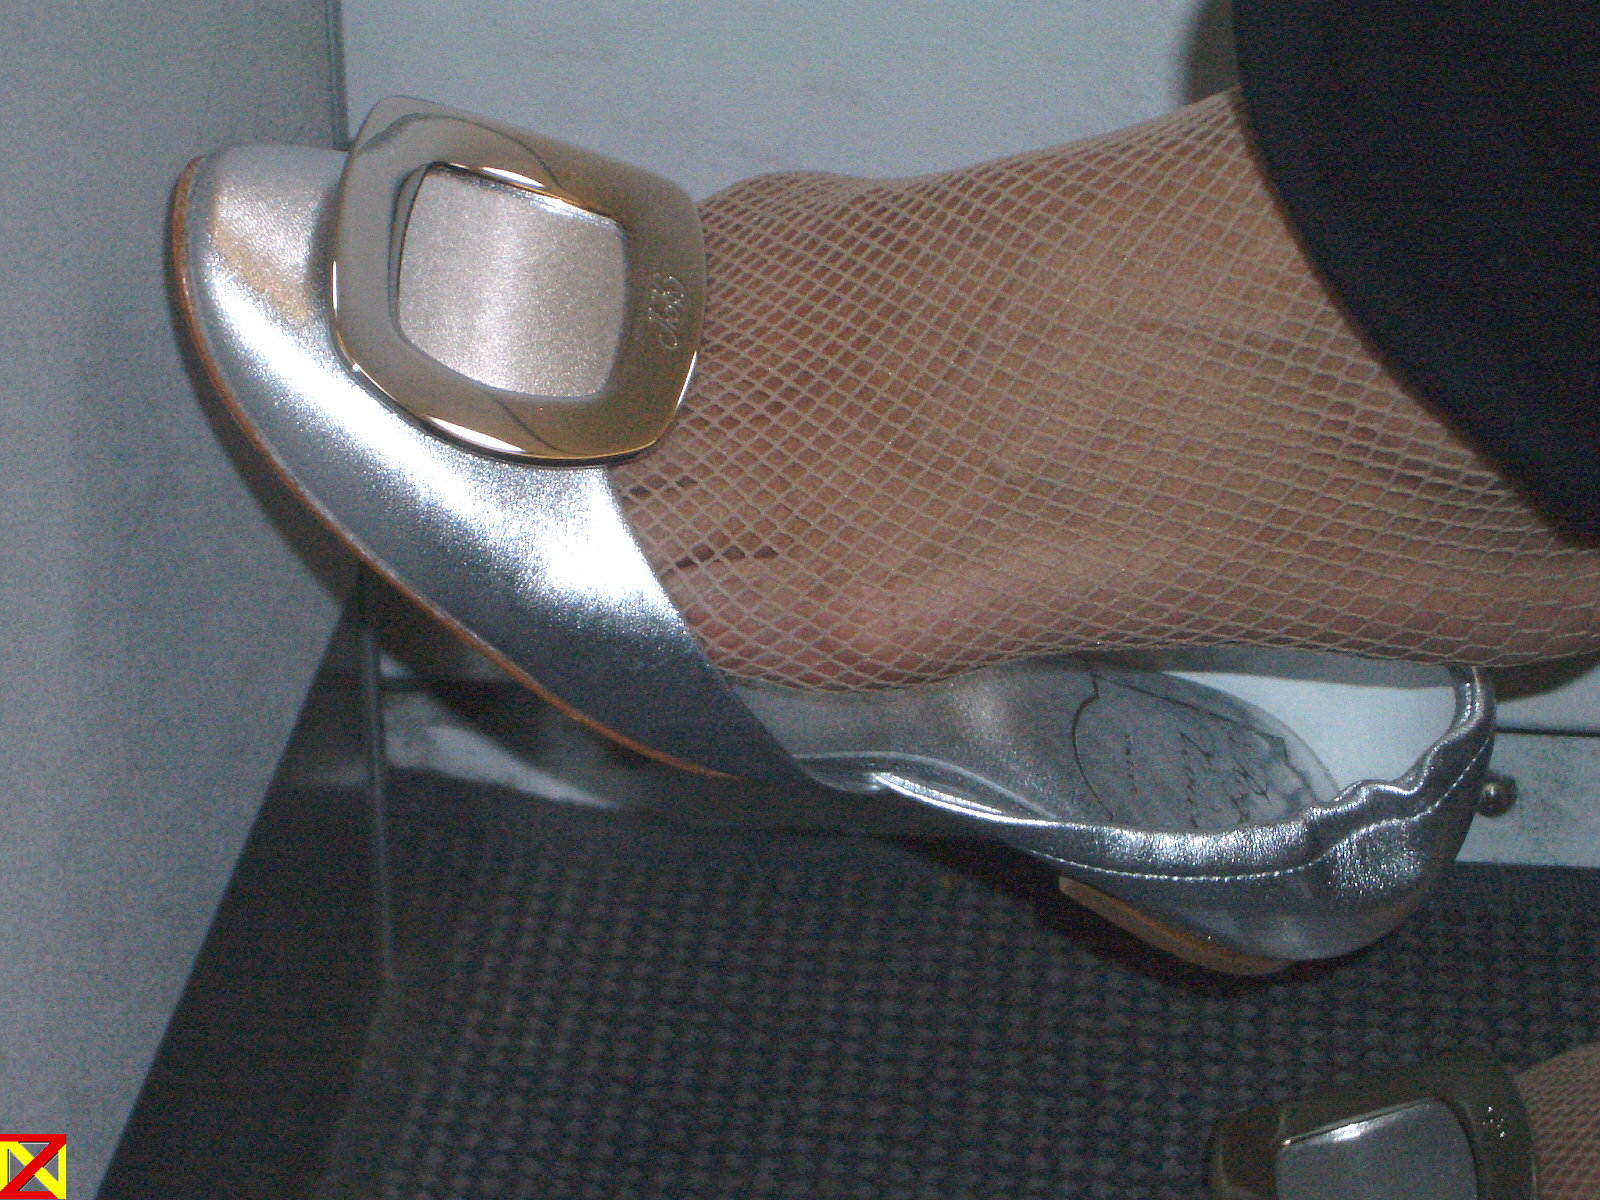 Sexy Feet In Hose photo 21